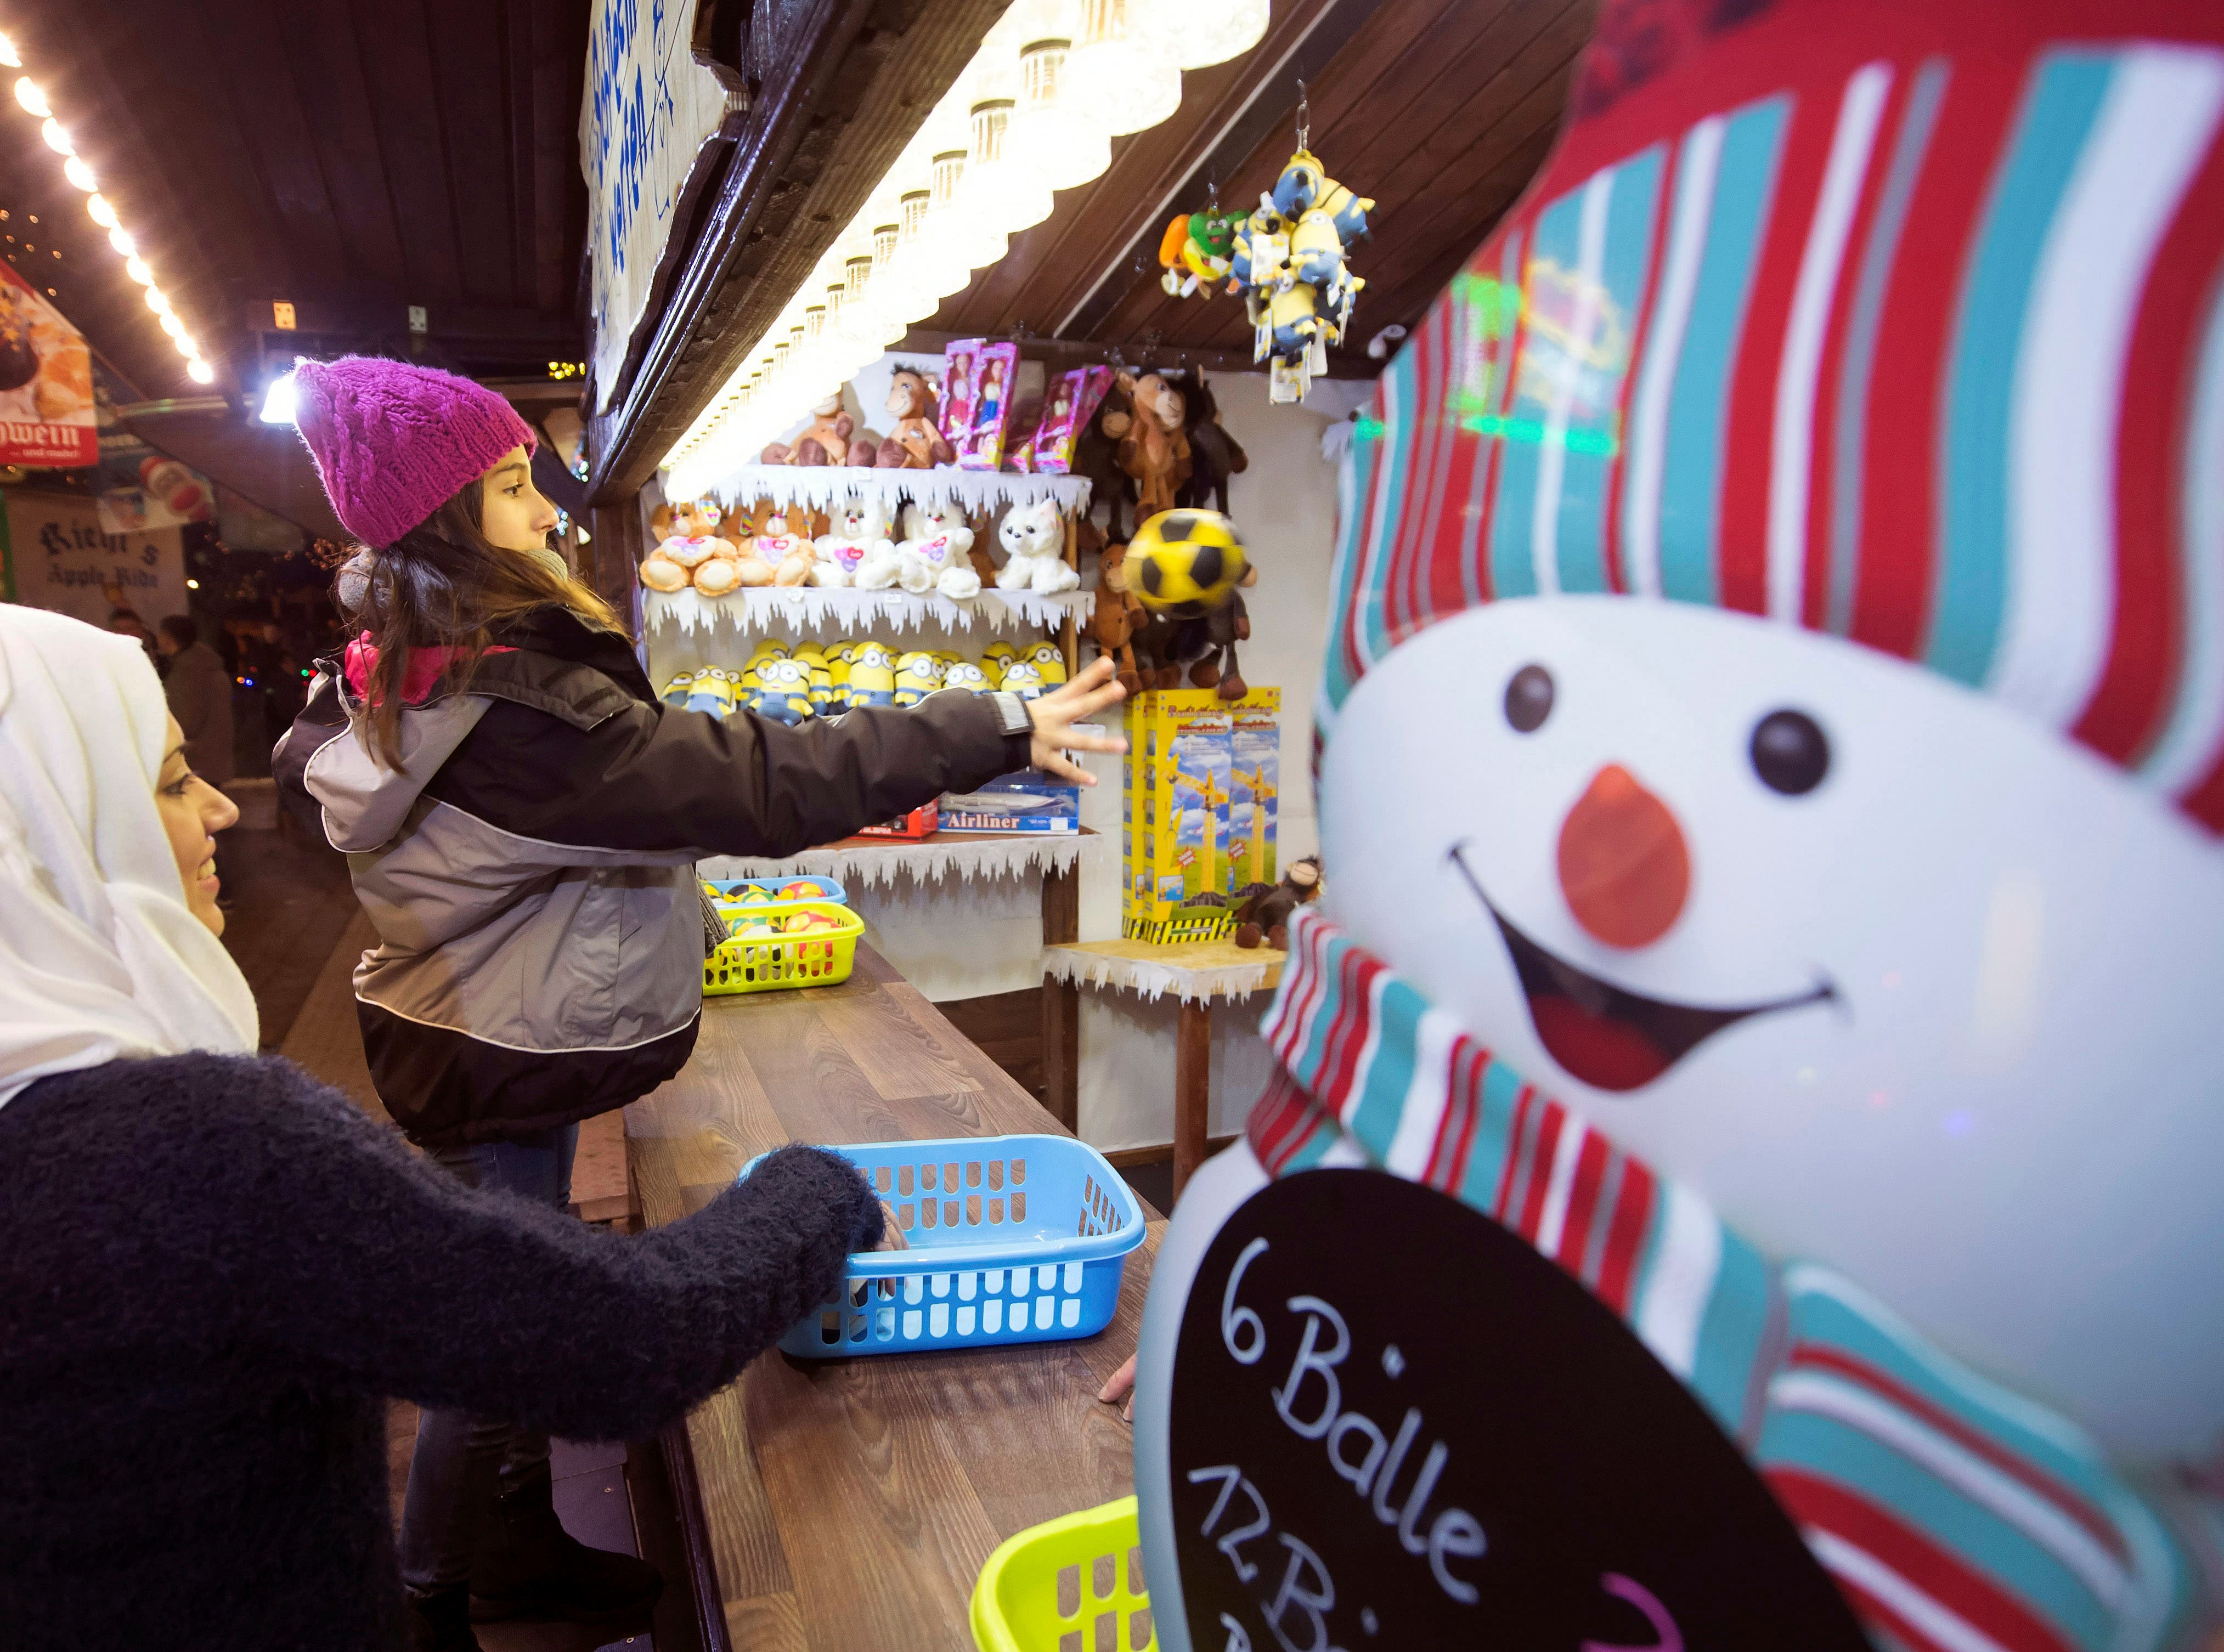 In this photo taken Tuesday, Dec. 8, 2015, Syrian refugee Raghad Habashieh, right, plays a ball besides her sister Reem Habashieh, left, as they visit the Christmas market in Zwickau, eastern Germany.